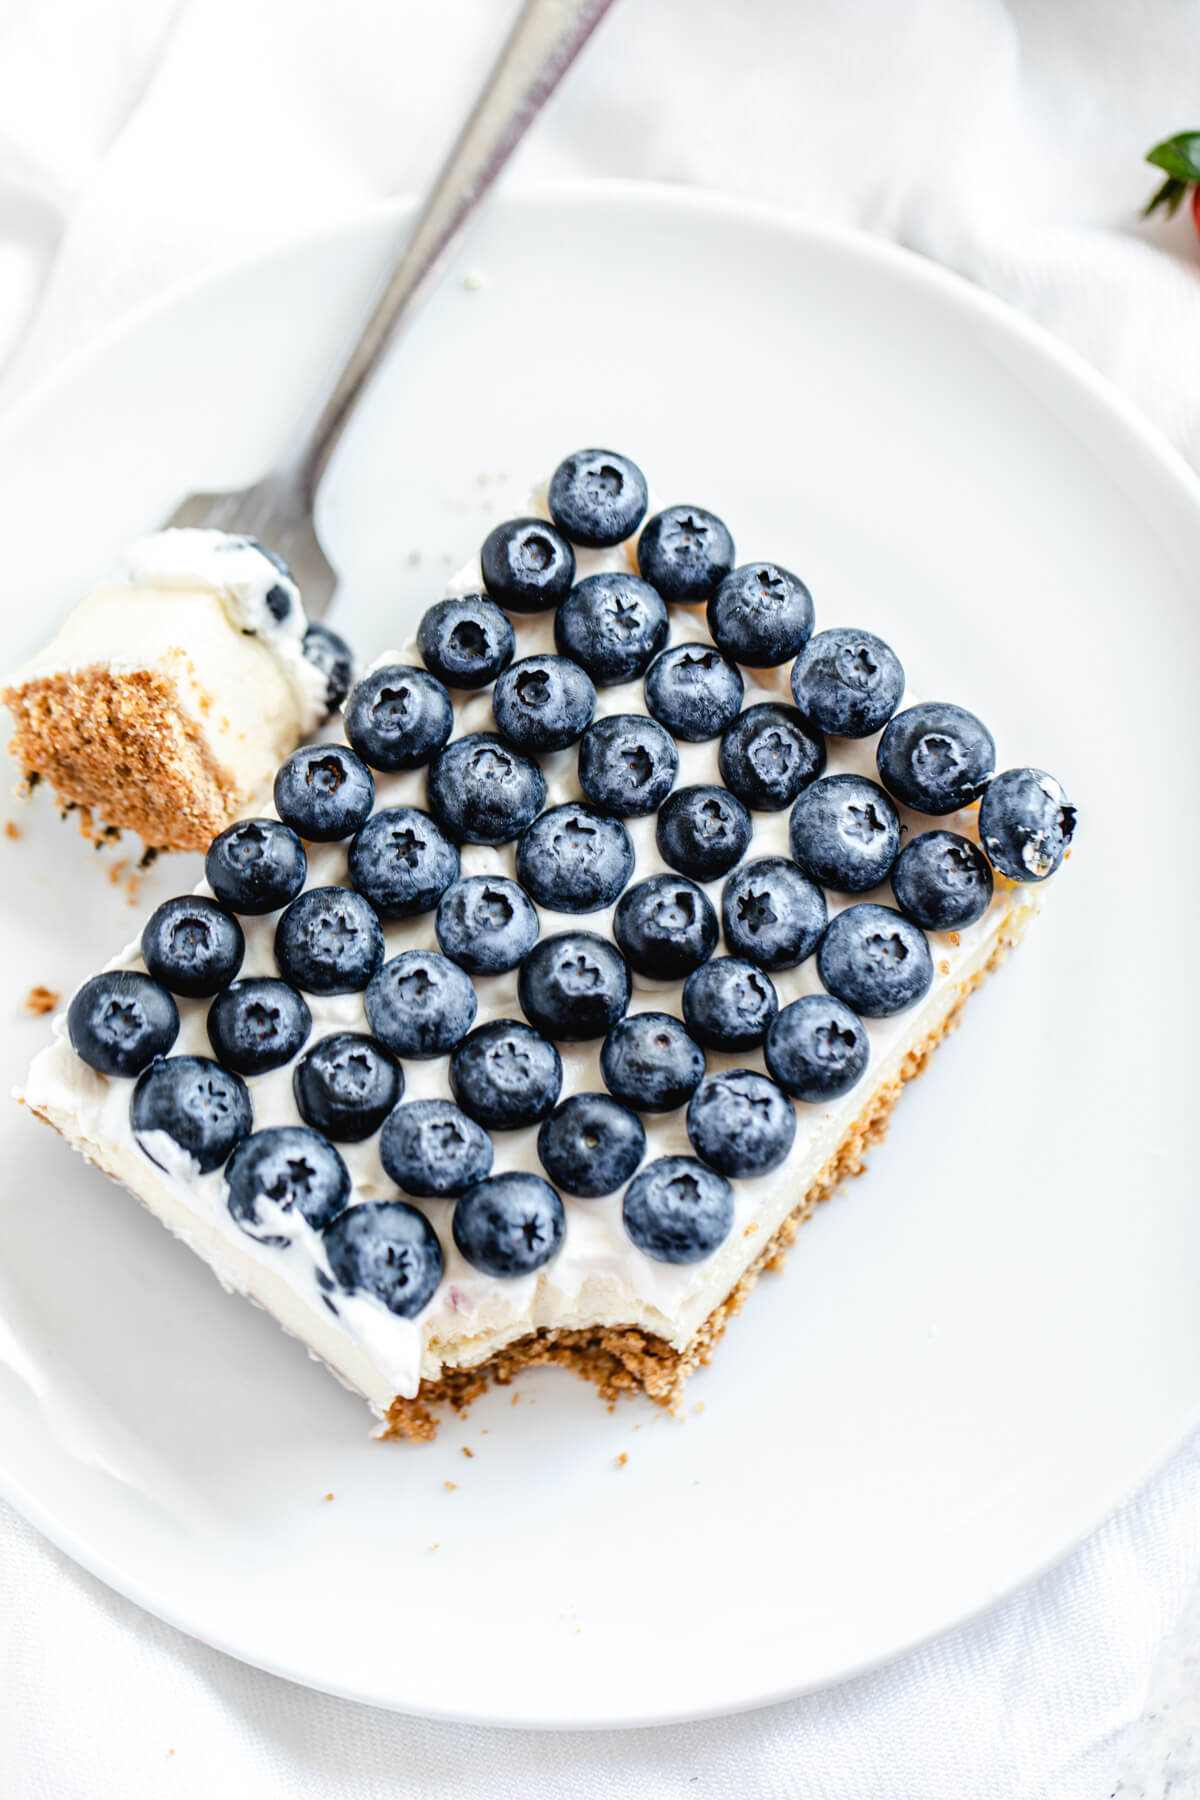 slice of cheesecake with blueberries on top on a white plate with forkful taken out